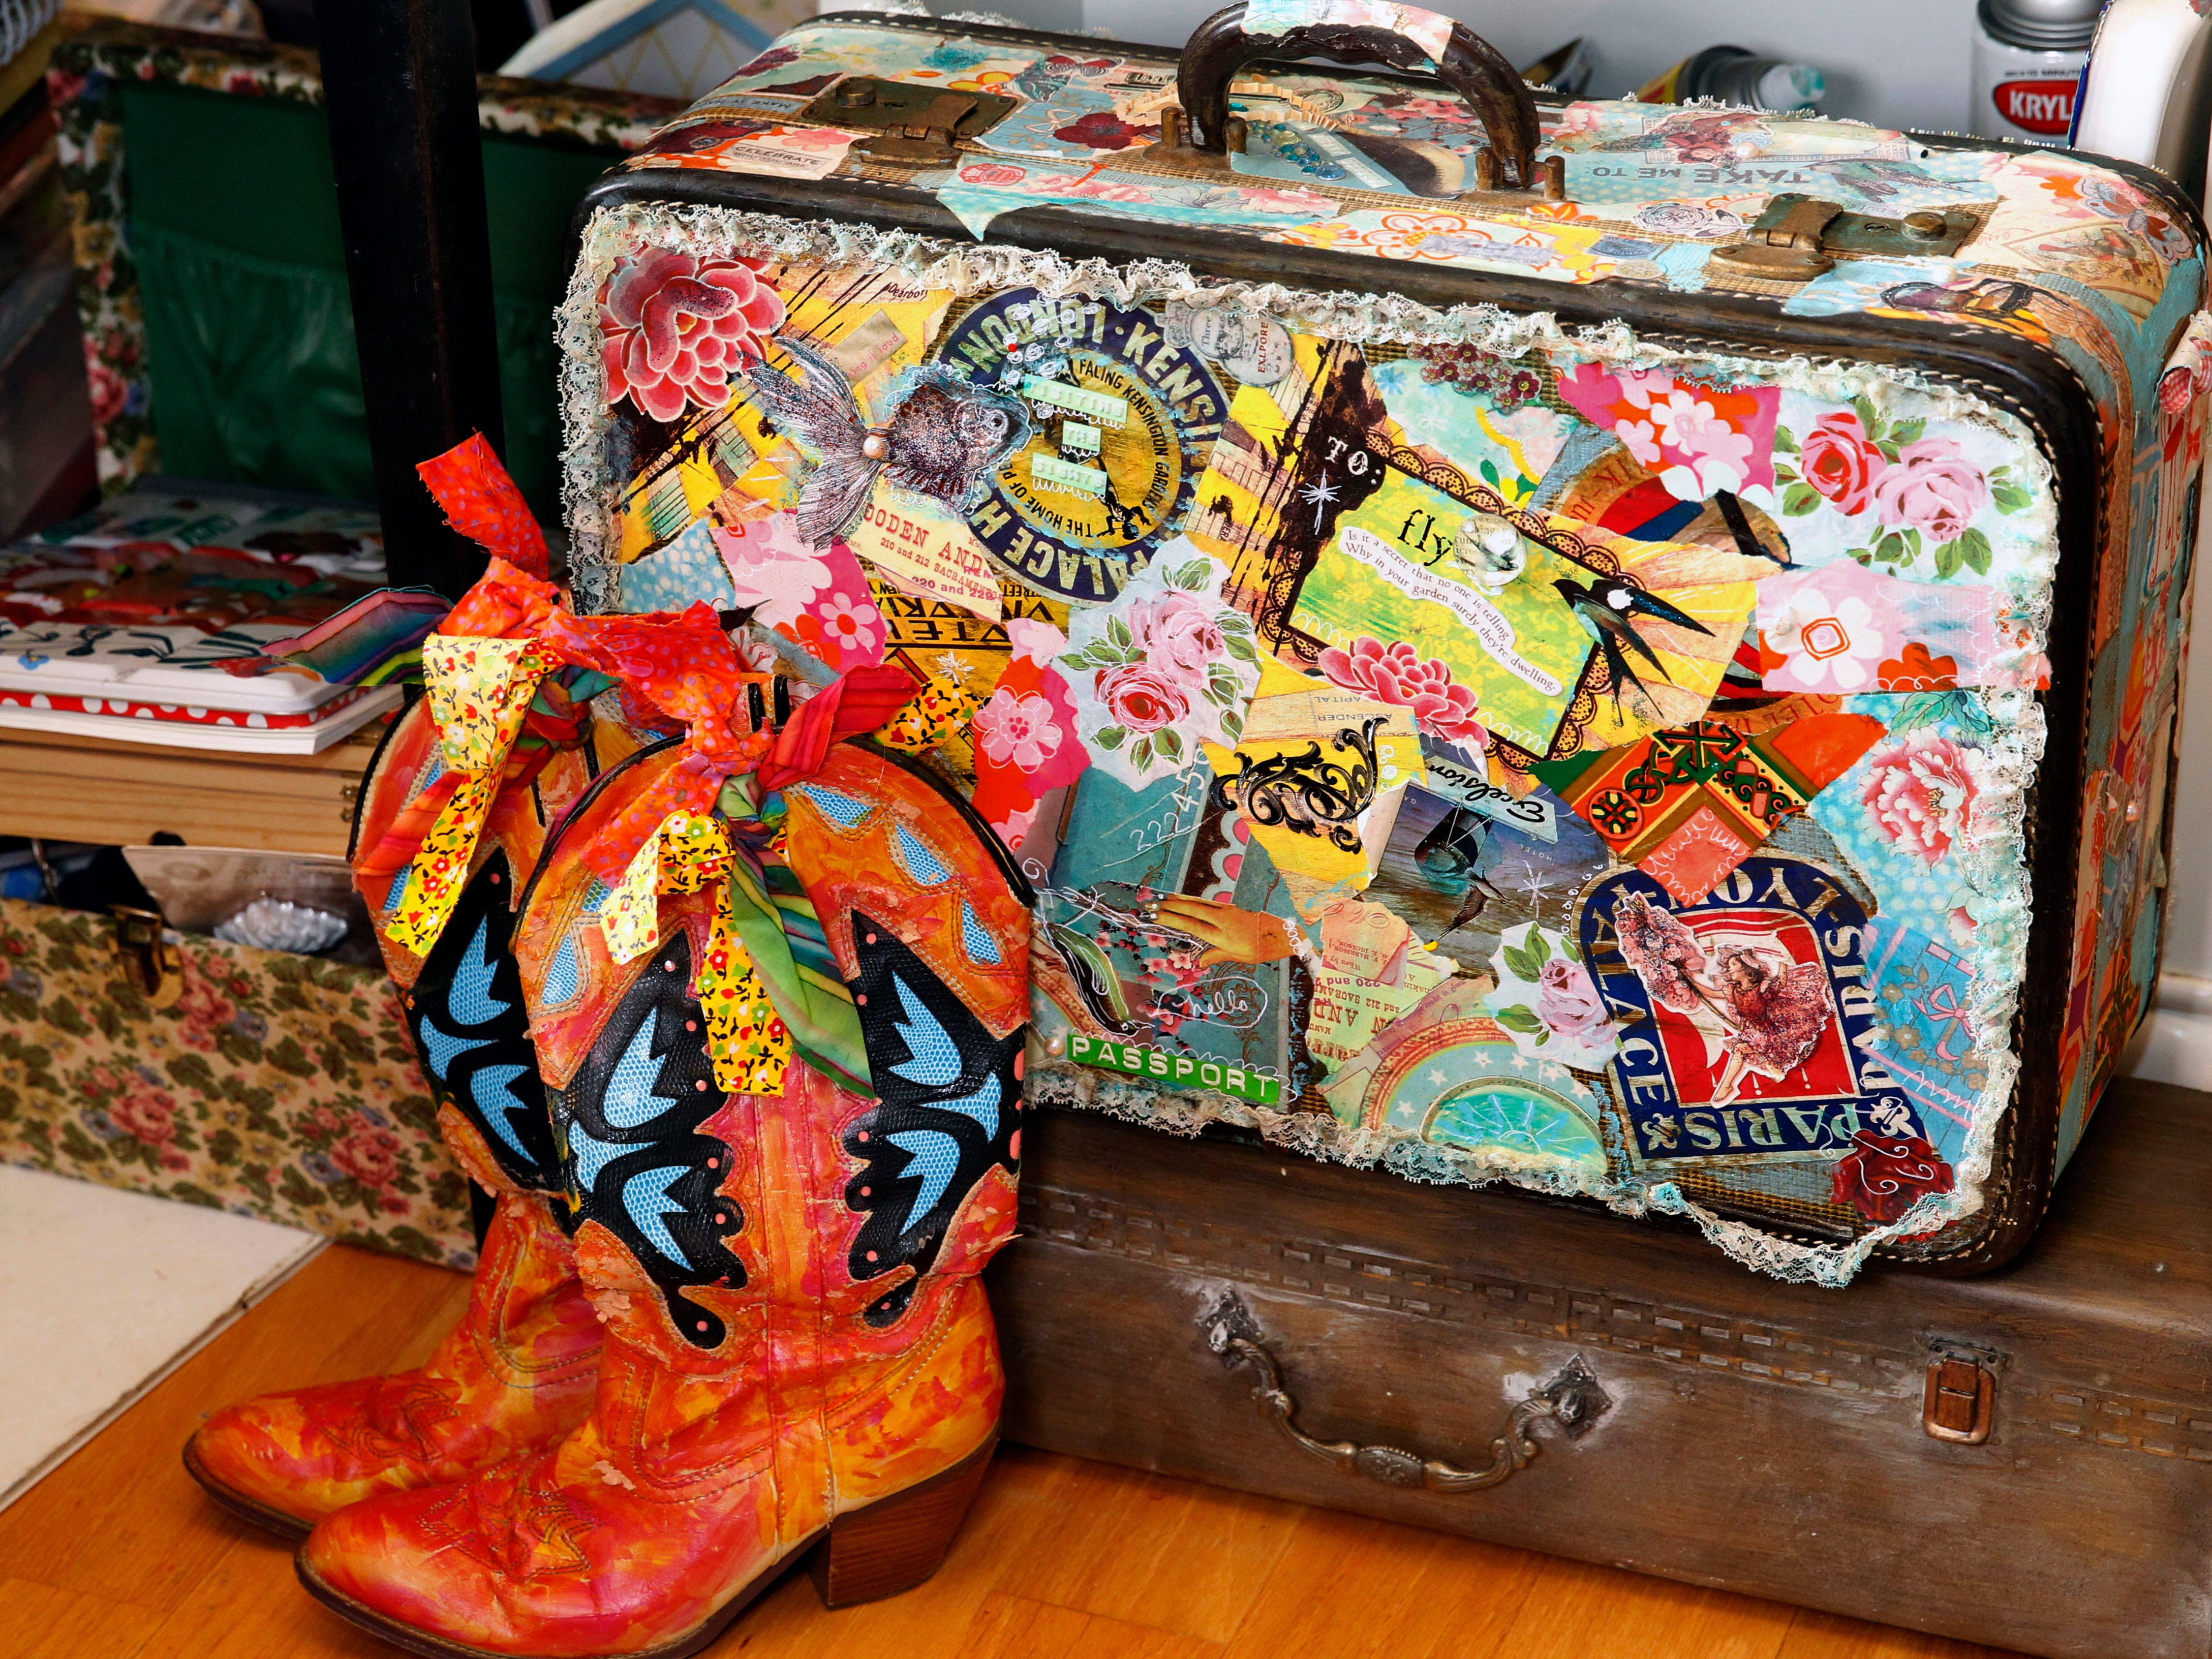 Among many other objects, Kiki Johanning paints boots and embellishes luggage.